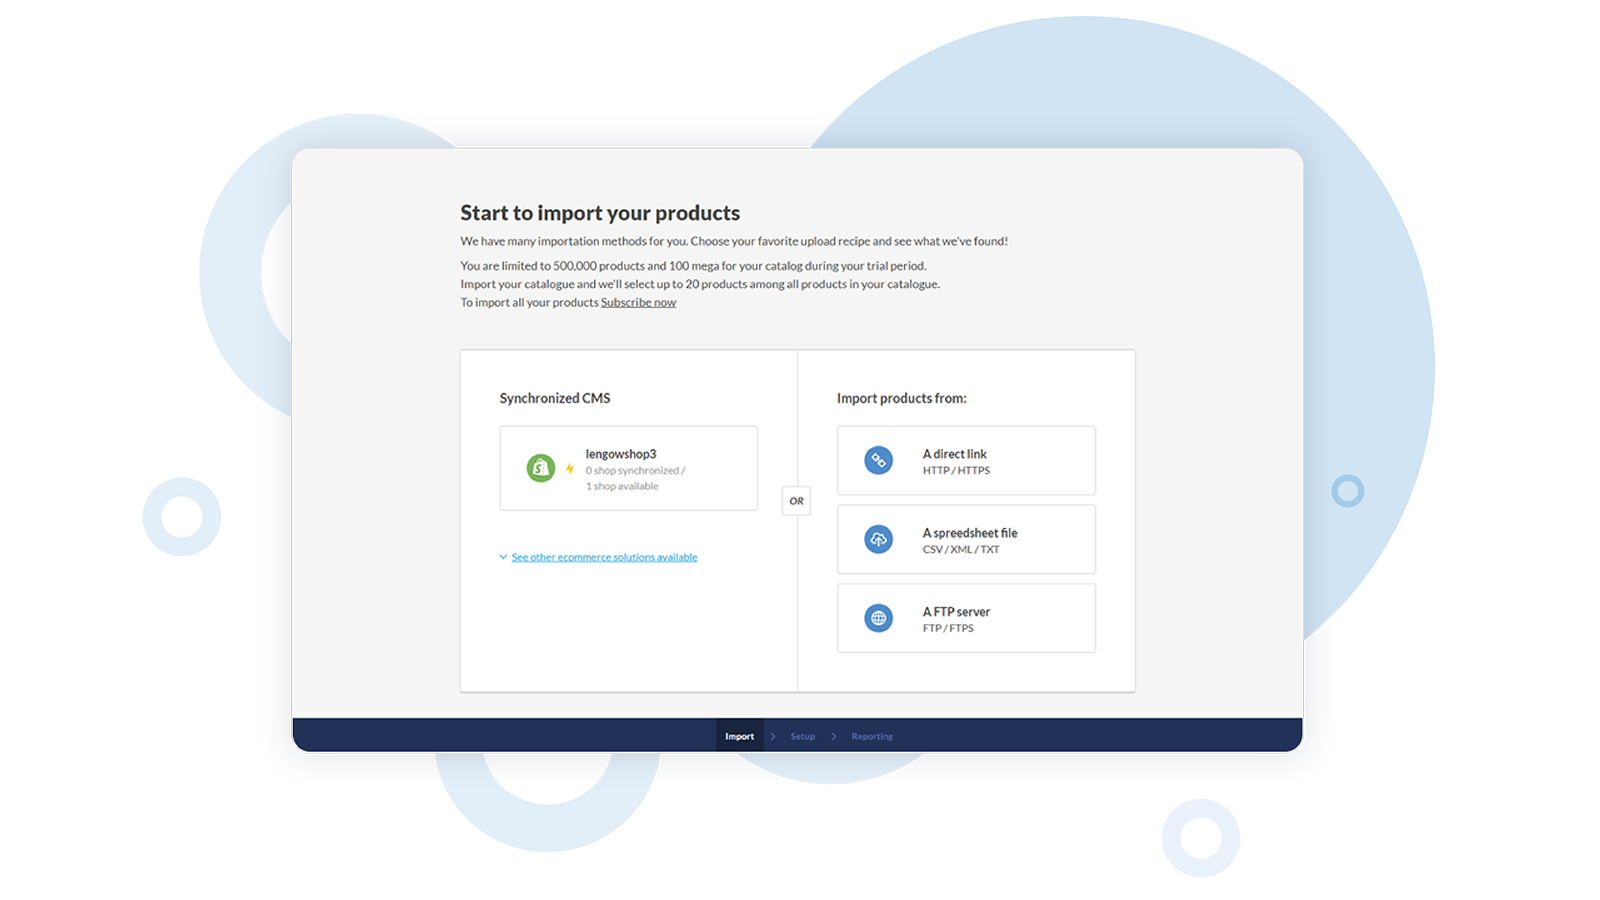 Import your products